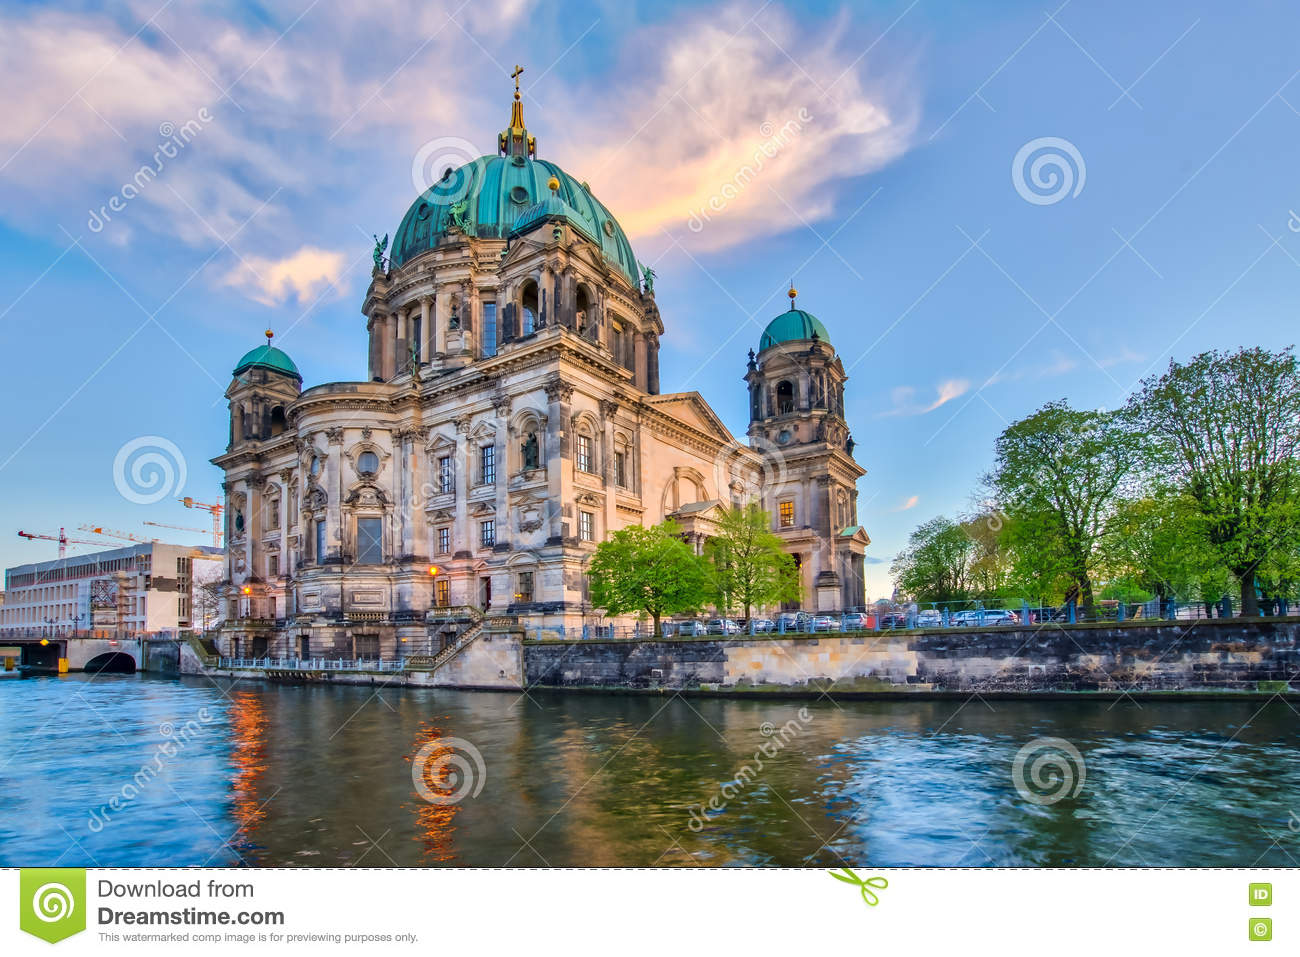 Berlin Cathedral With A Nice Sky In Berlin, Germany Stock Photo.